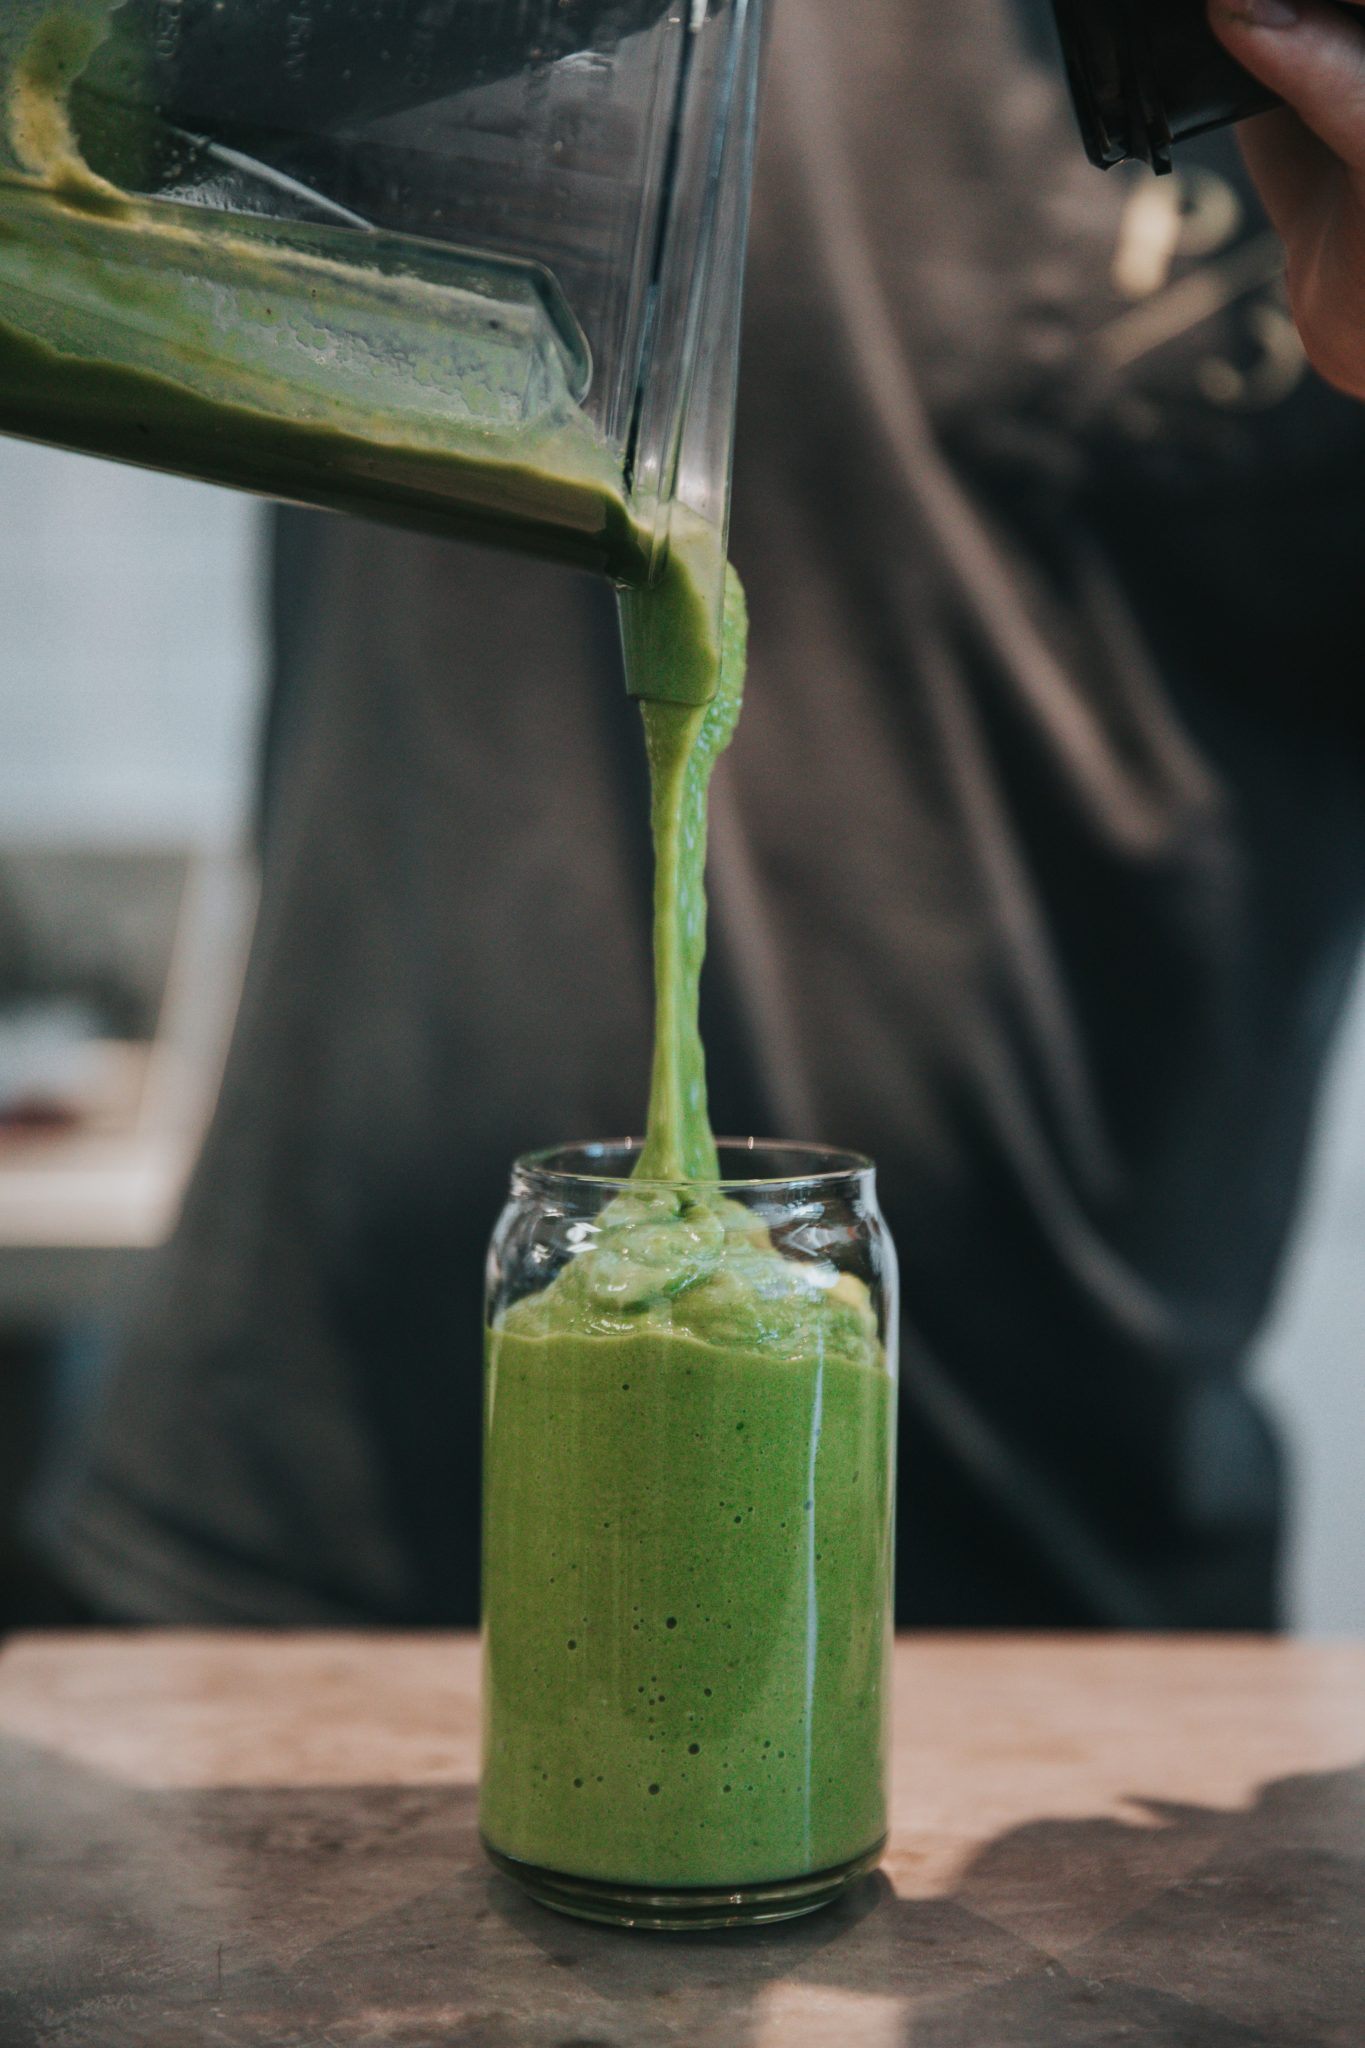 close up of a green smoothie being poured into a tall clear glass from a blender for bariatric surgery diet